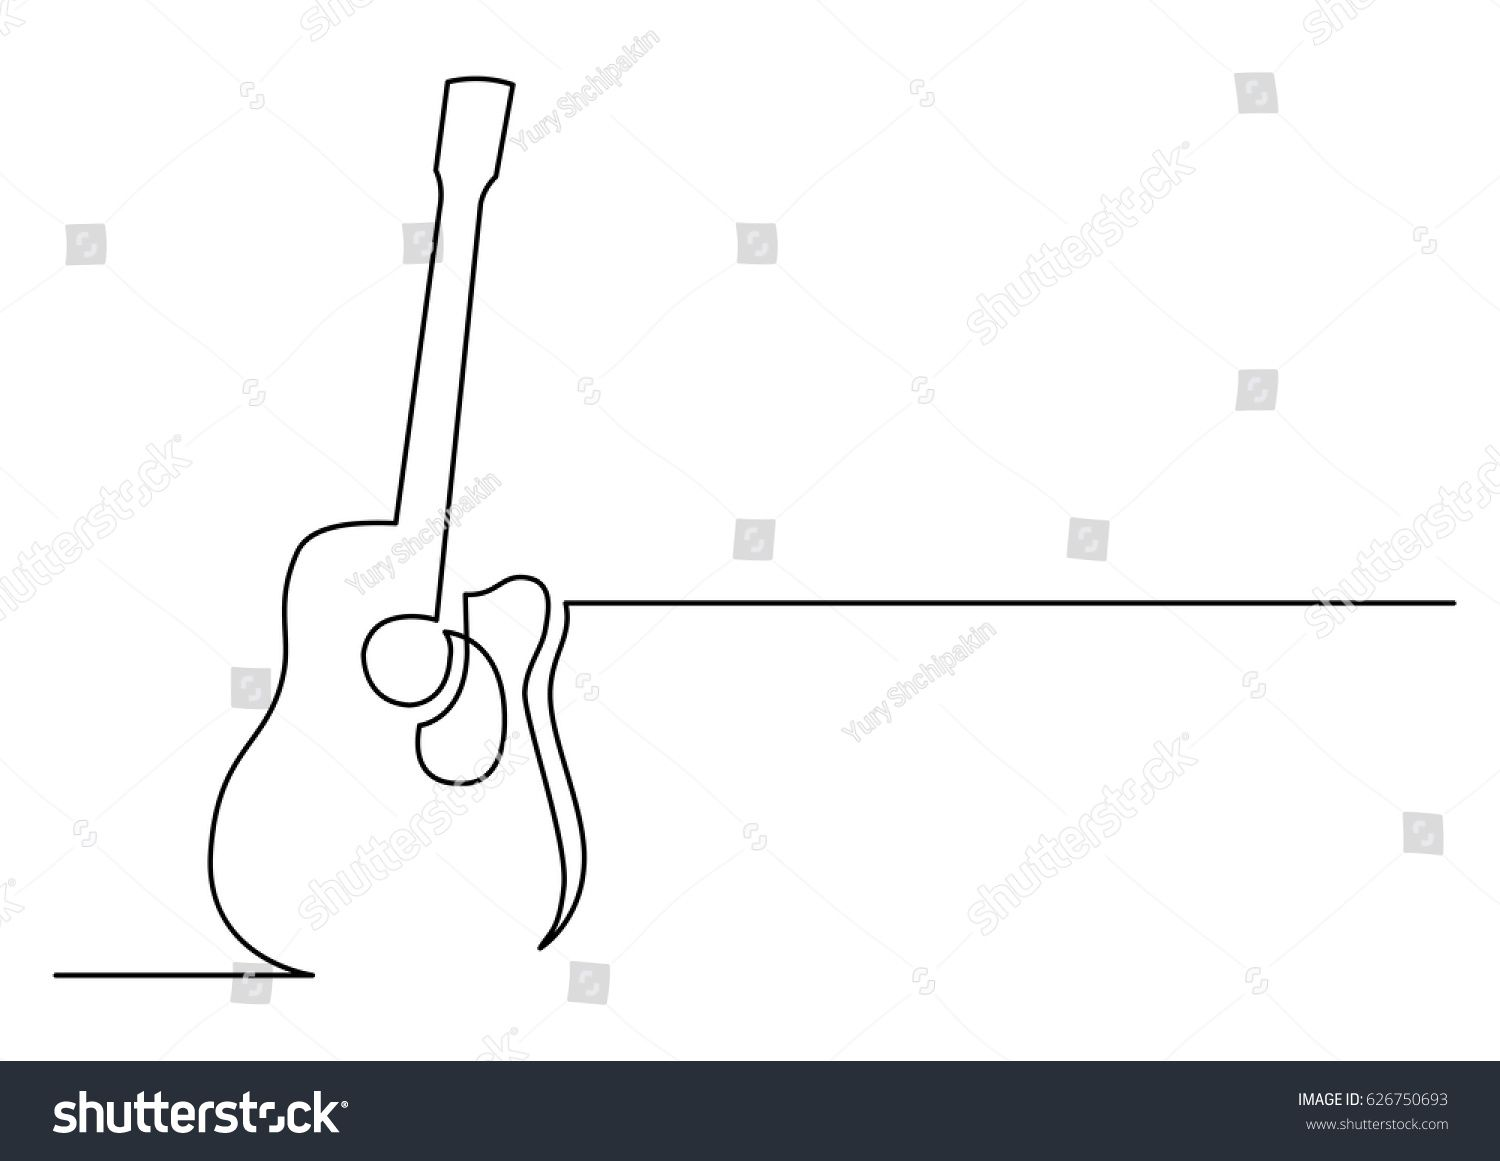 Continuous Line Drawing Of Acoustic Guitar Sponsored Sponsored Line Continuous Drawing Guitar Line Drawing Continuous Line Drawing Single Line Drawing